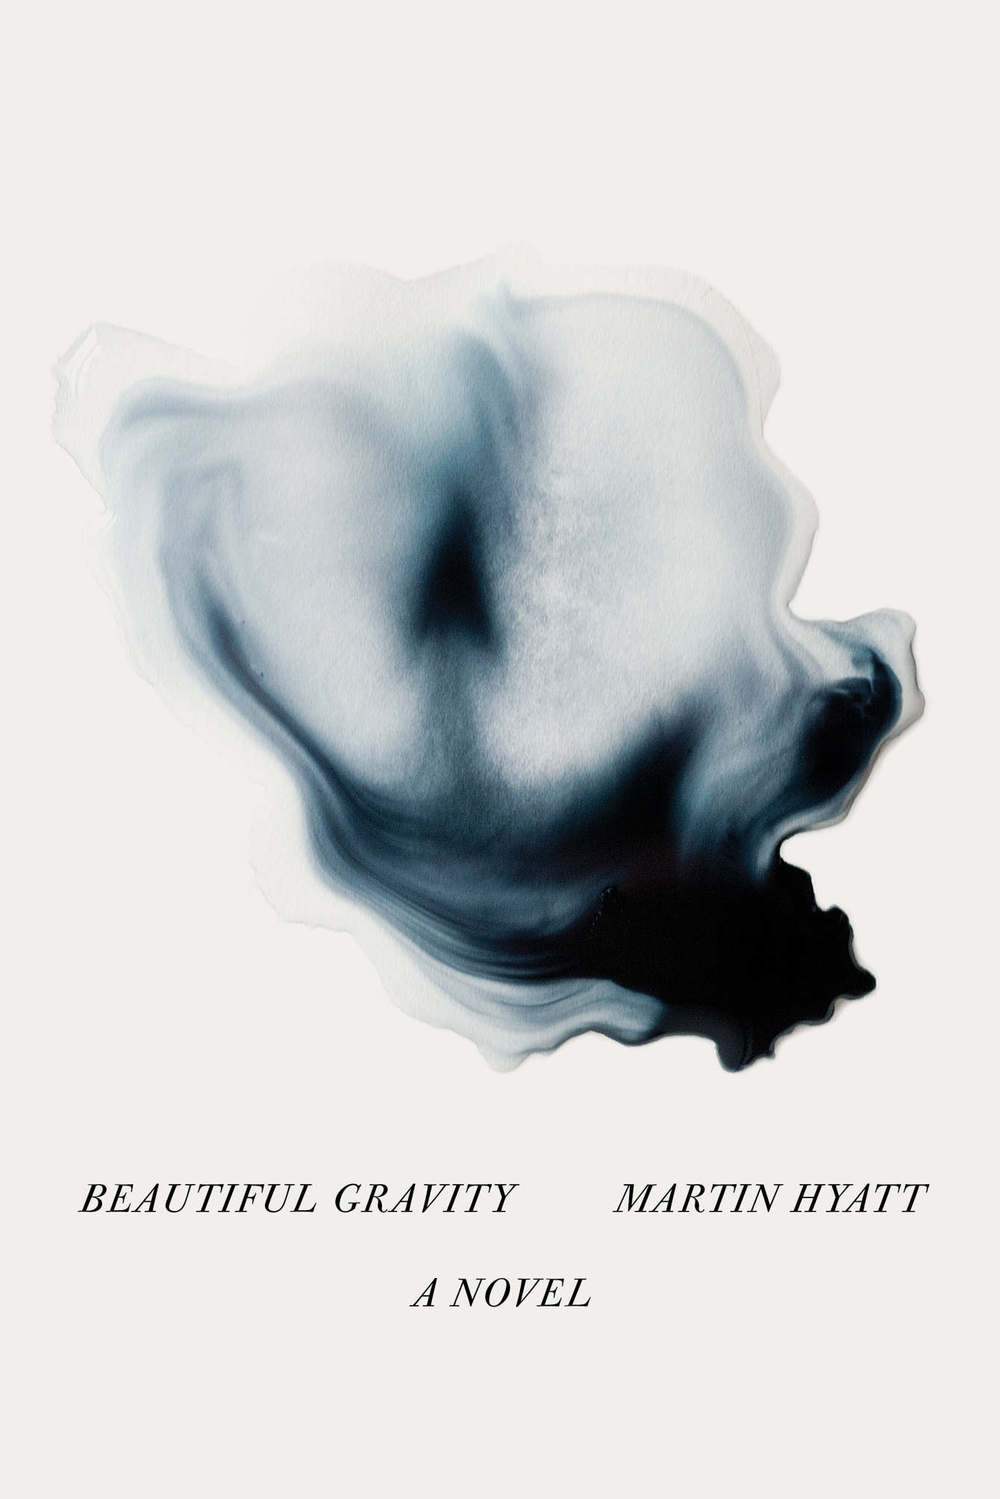 Beautiful-Gravity-cover_1340_c.jpg